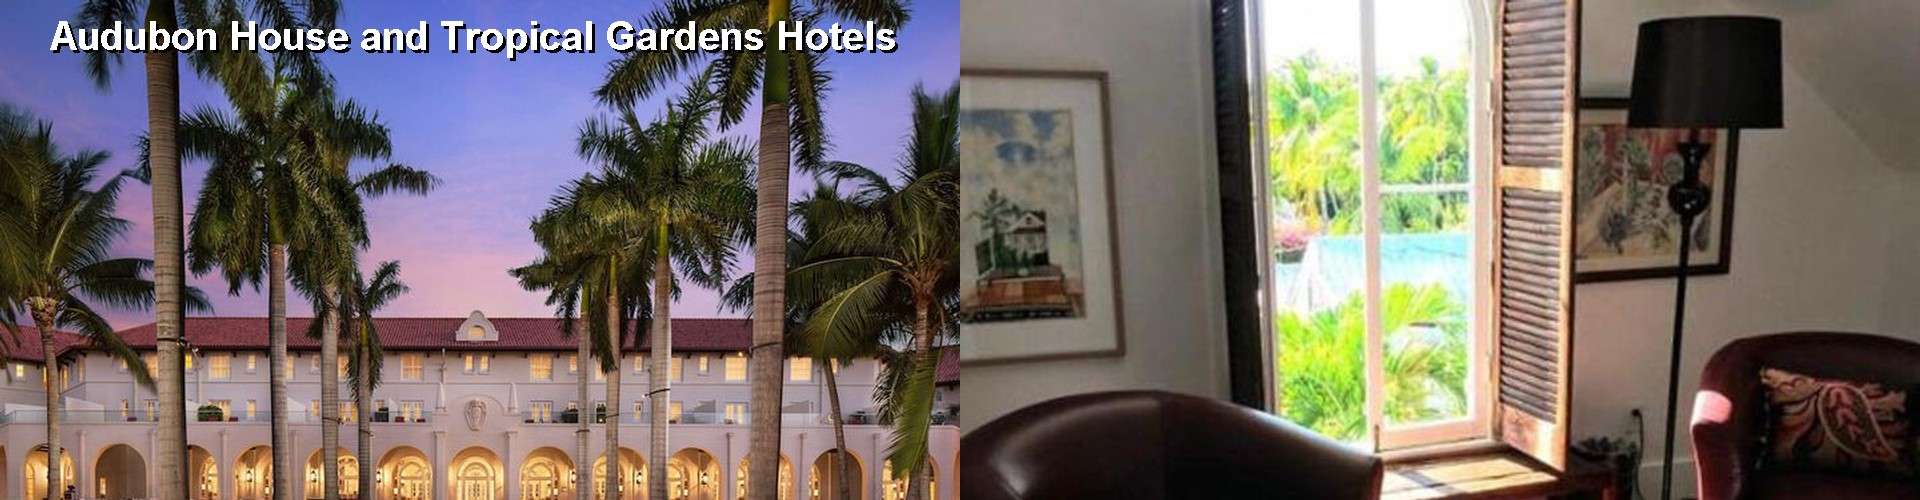 5 Best Hotels near Audubon House and Tropical Gardens